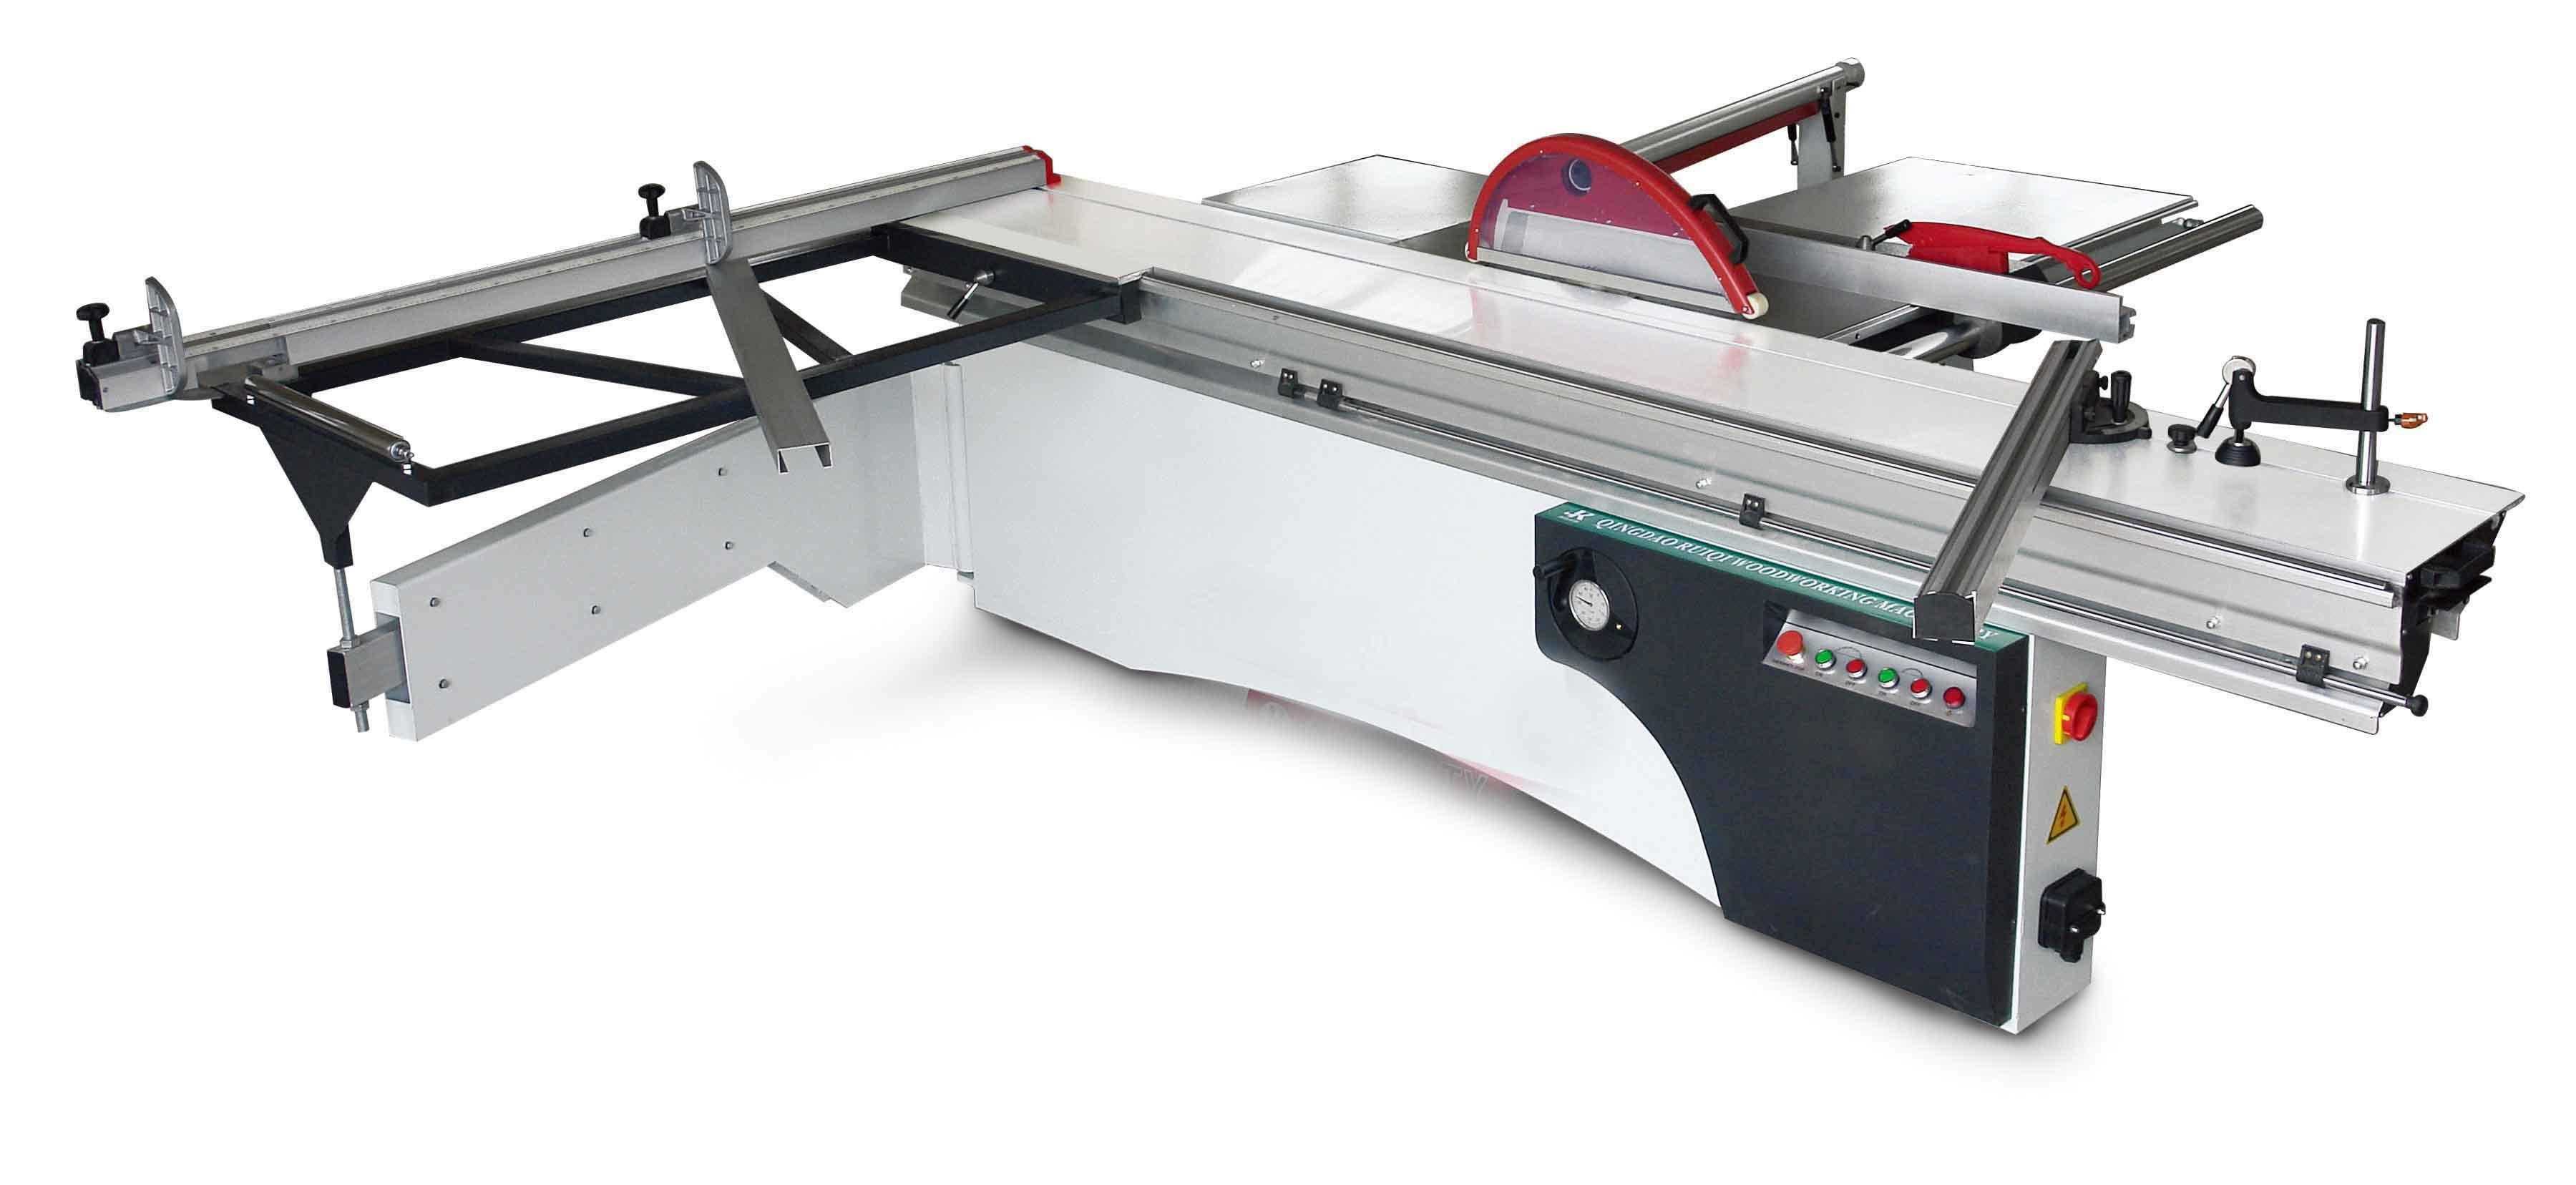 Sliding Table Saw : Sliding Table Saw - China Woodworking Machinery, Precision Panel Saw